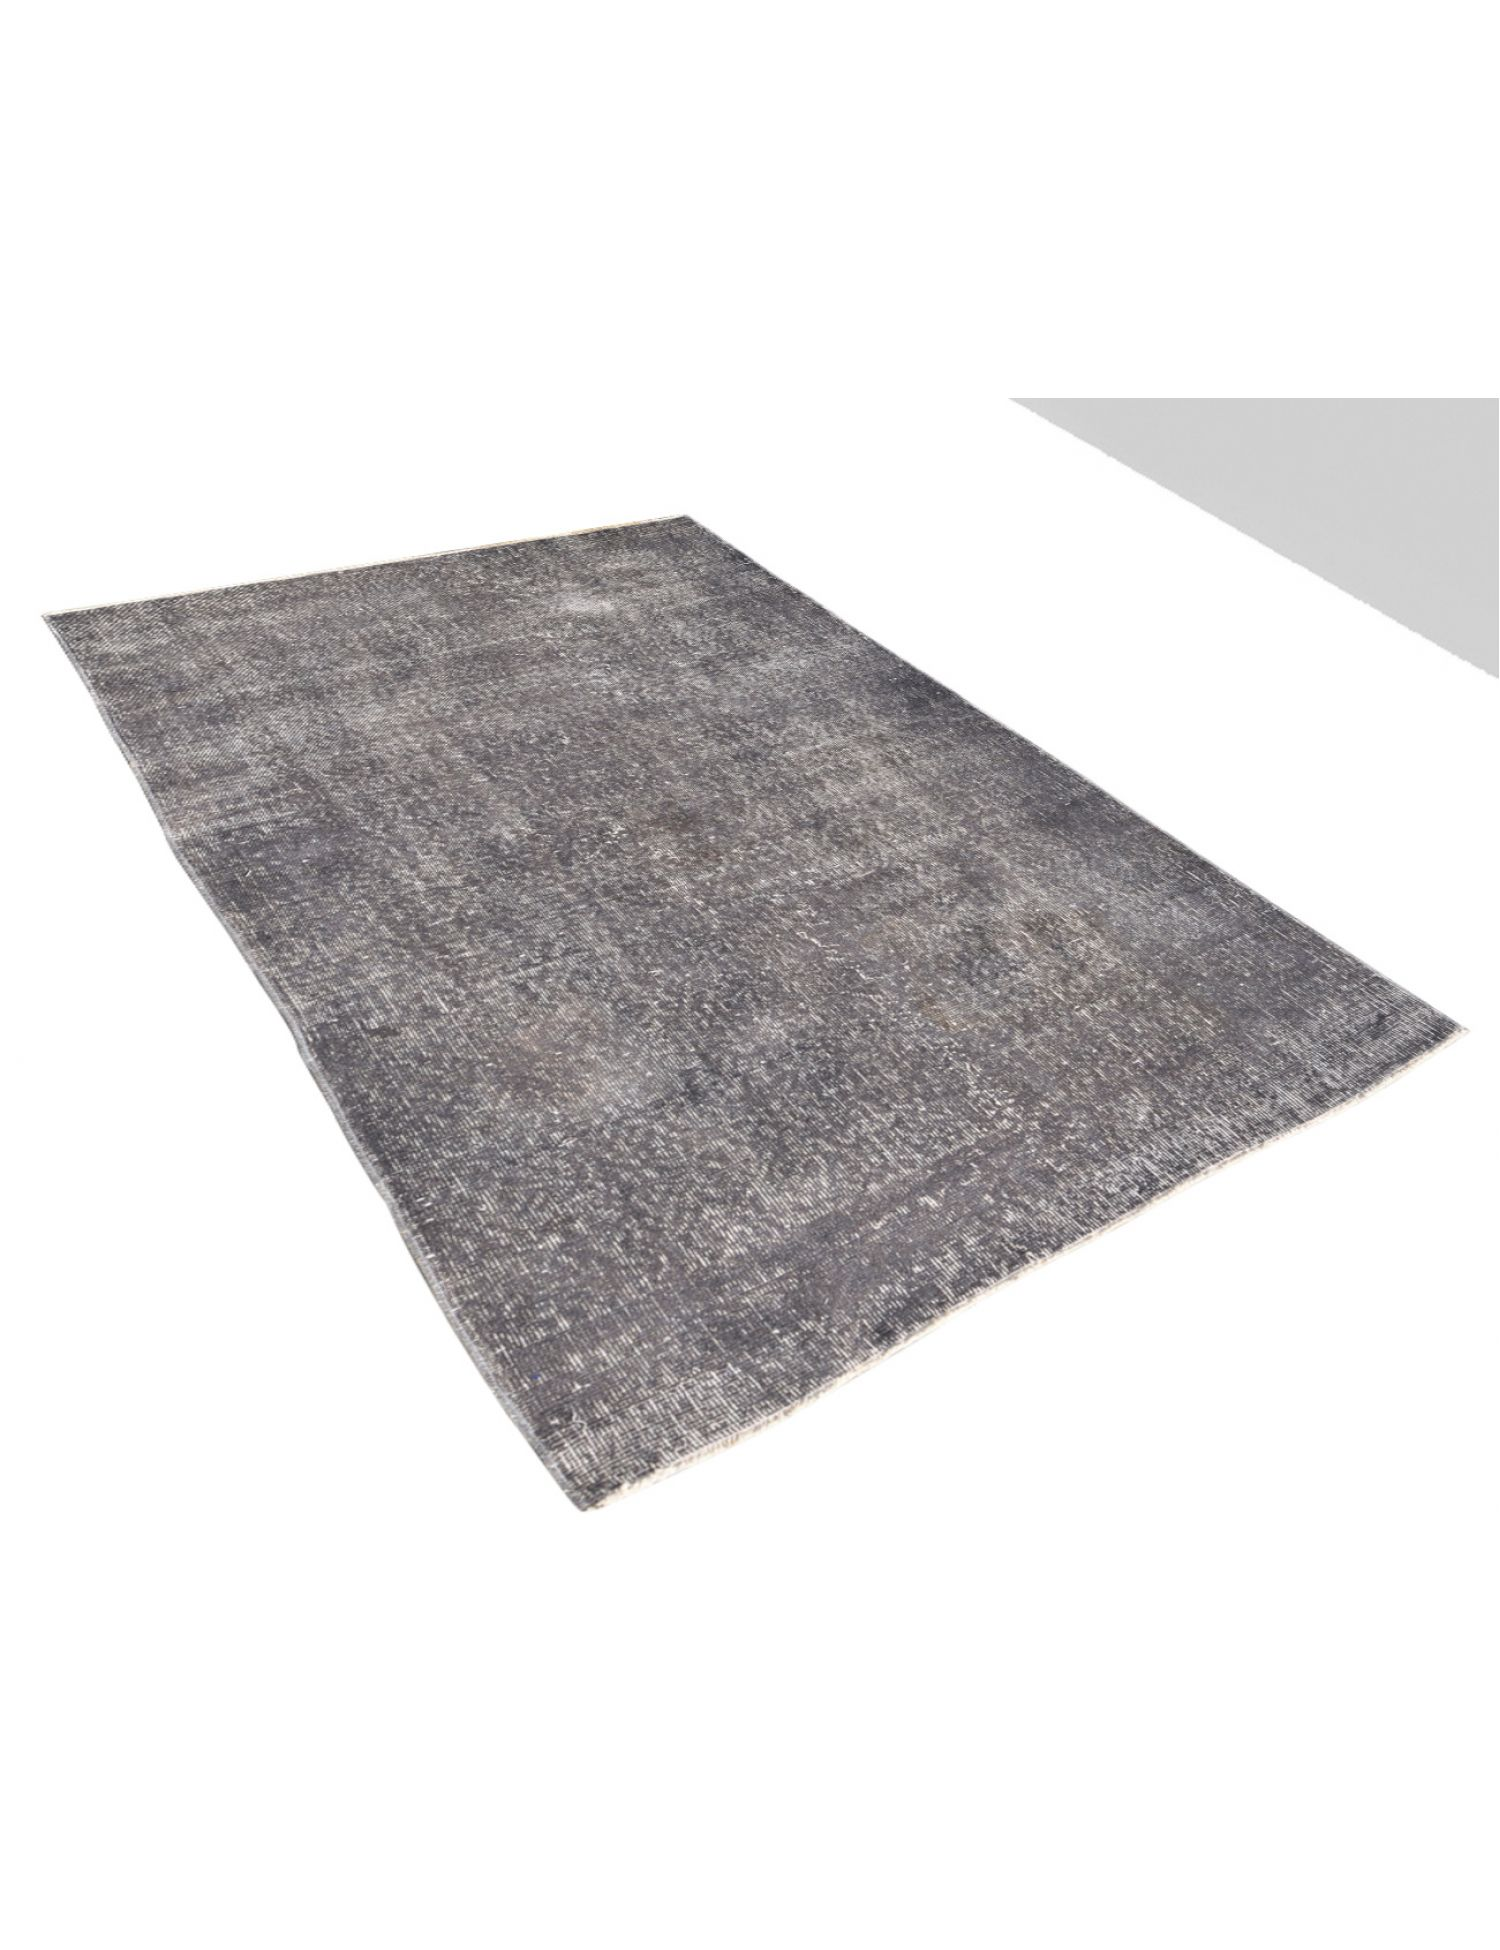 Vintage Carpet  grey <br/>205 x 115 cm